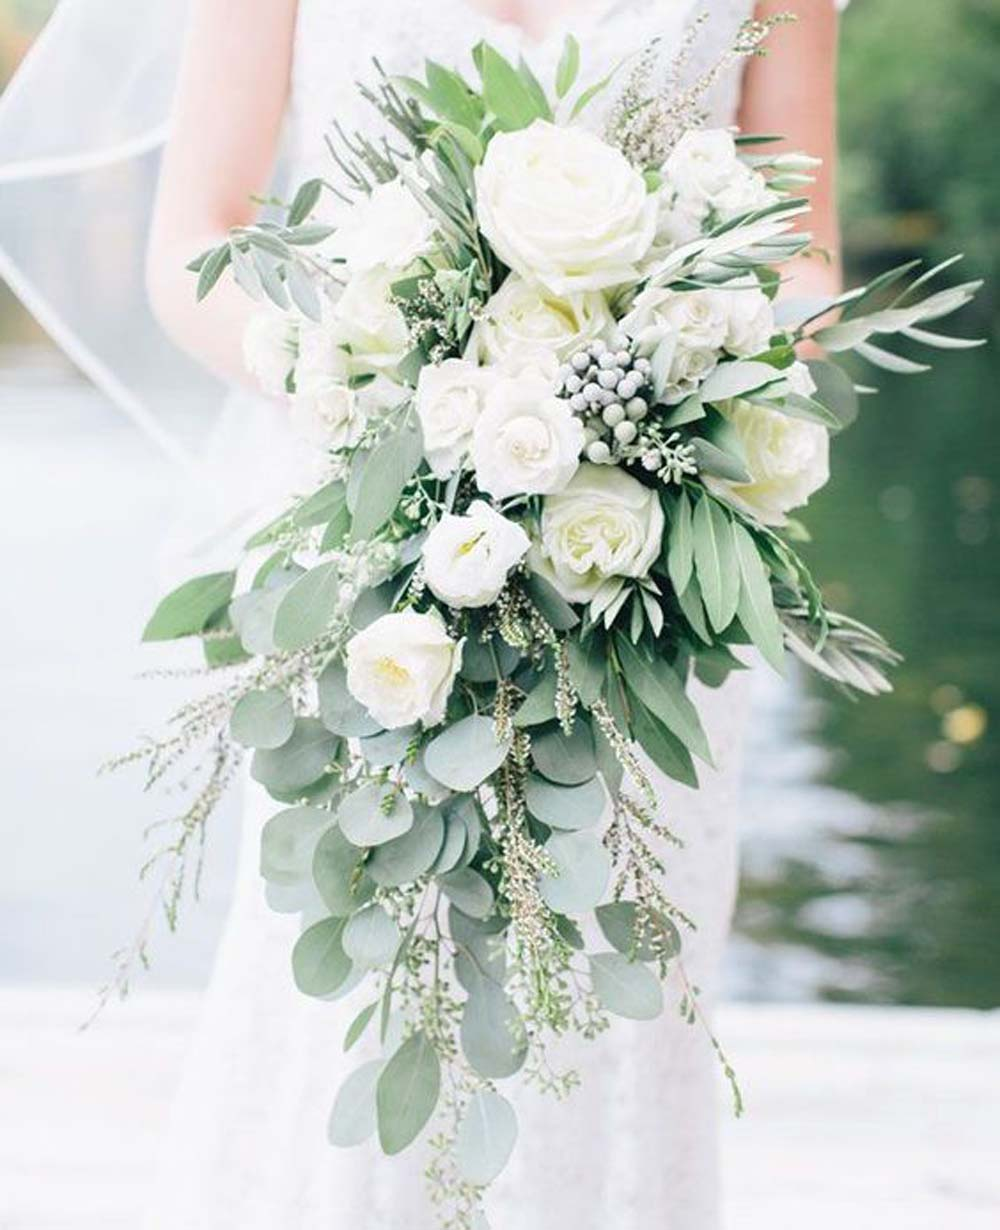 The Top 10 Best Blogs on Bouquets & Flowers